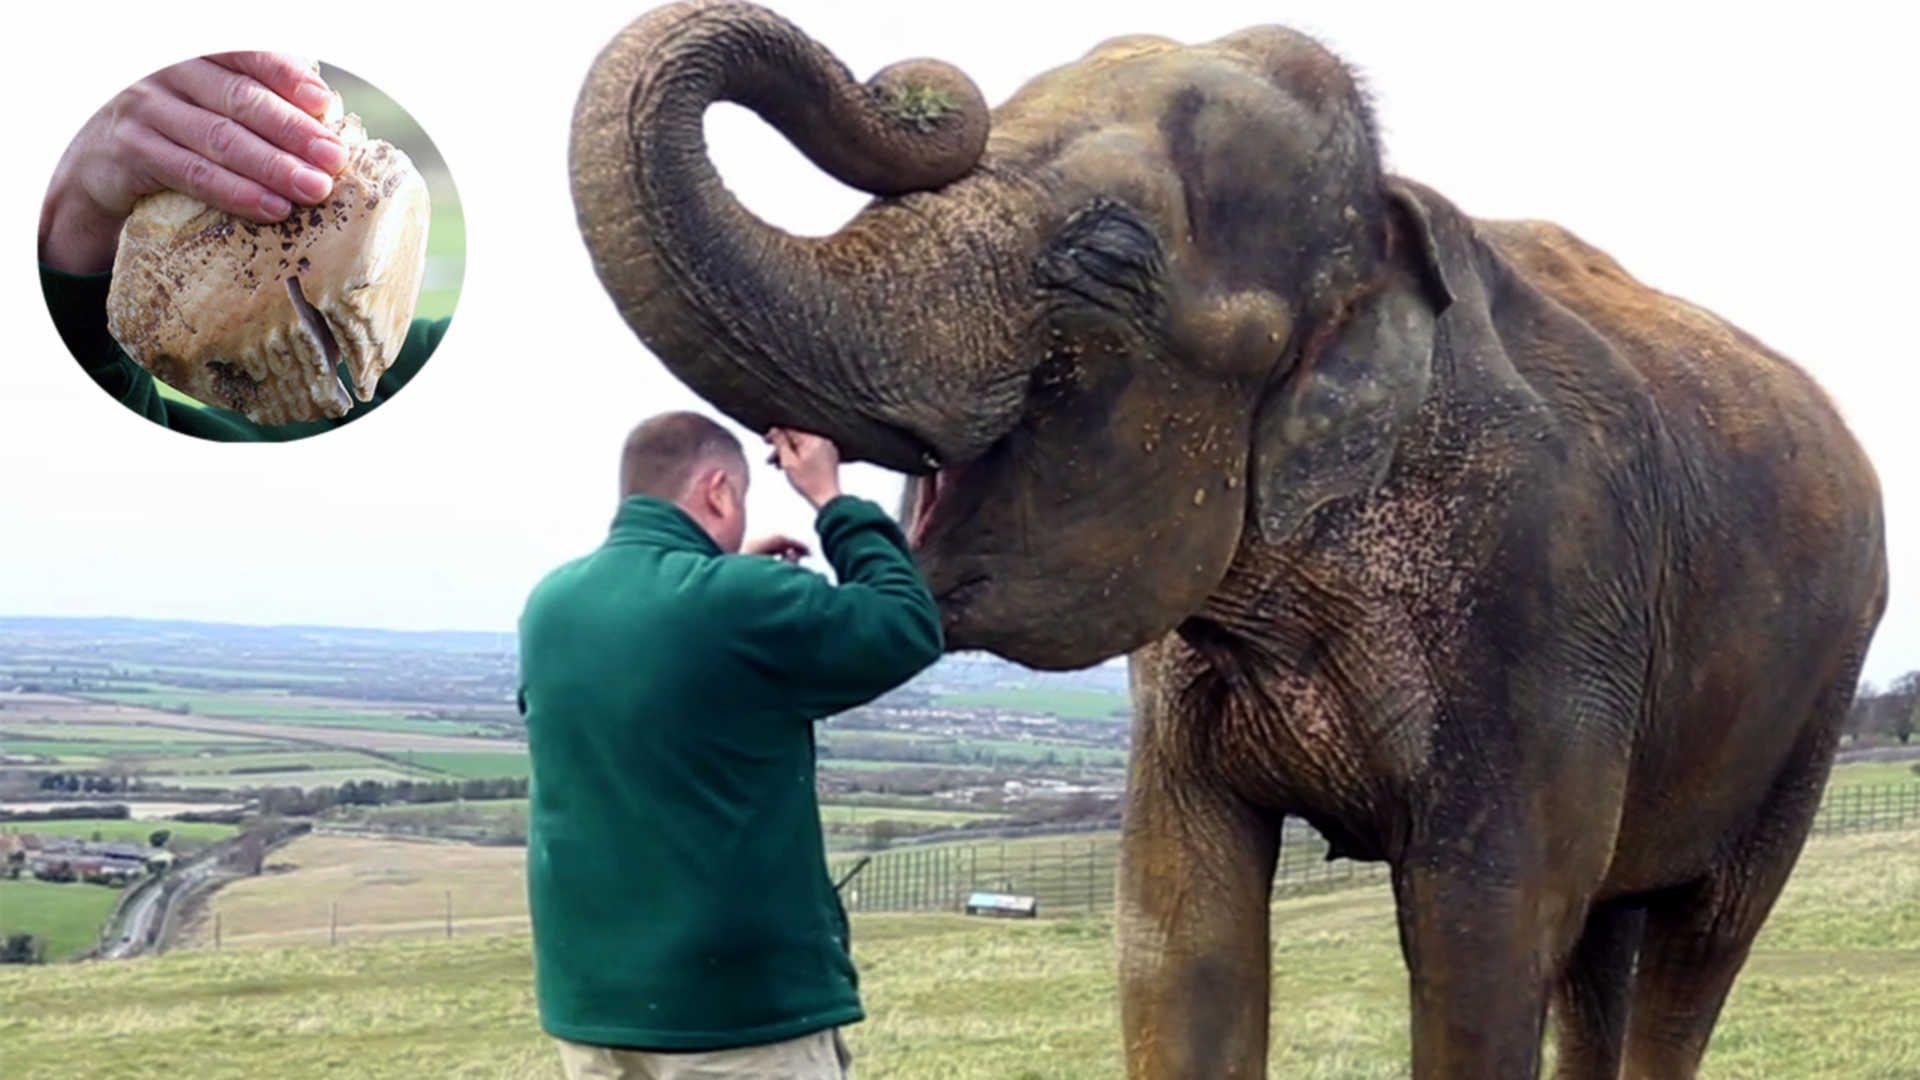 Elephant With Tooth Pain Has It Removed - YouTube